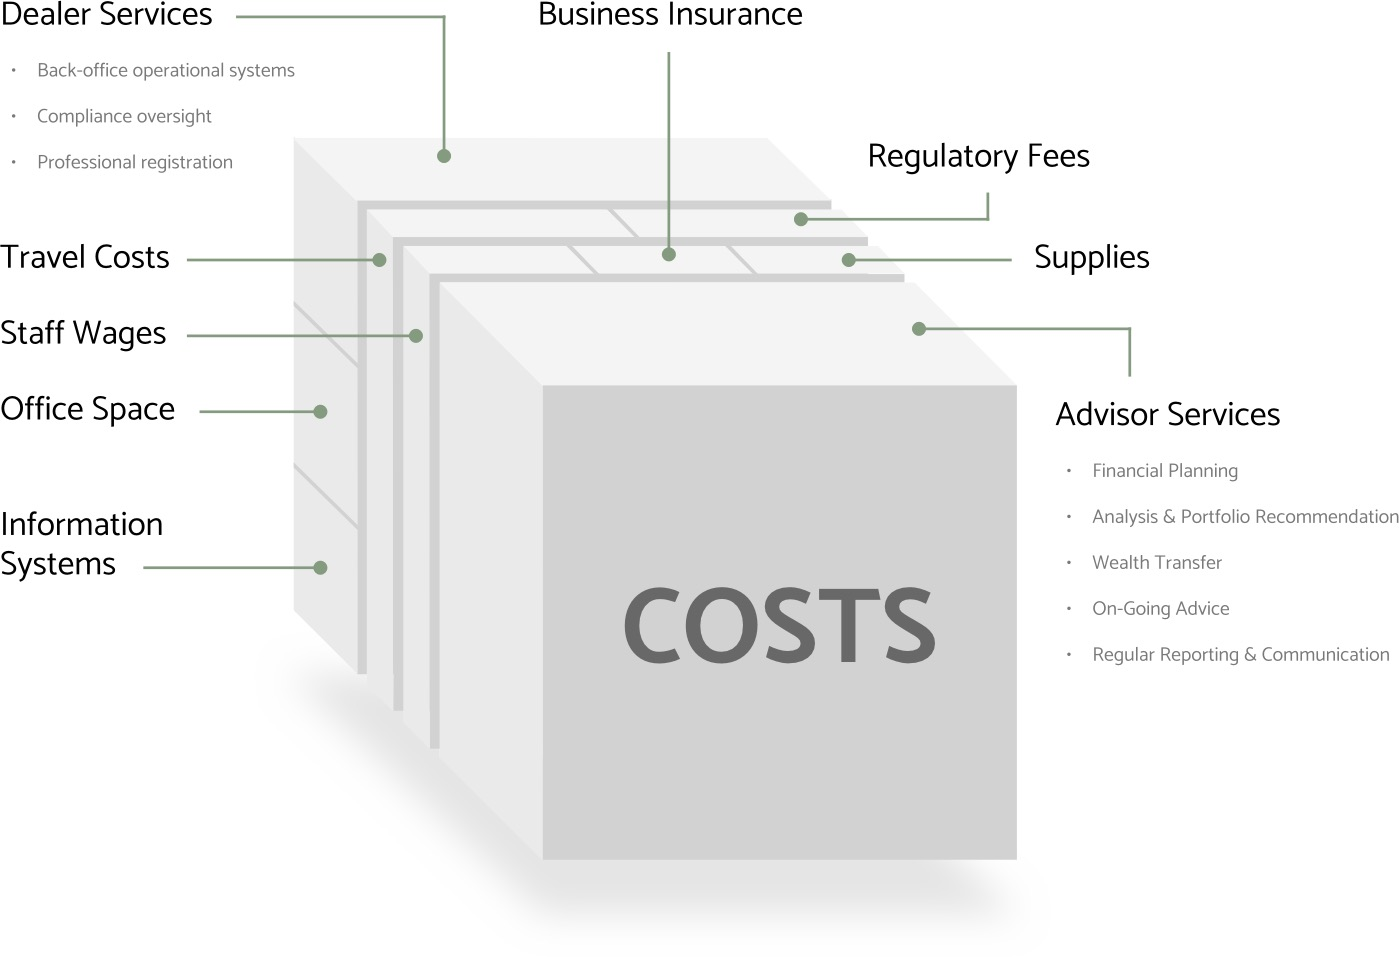 cost of advice breakdown